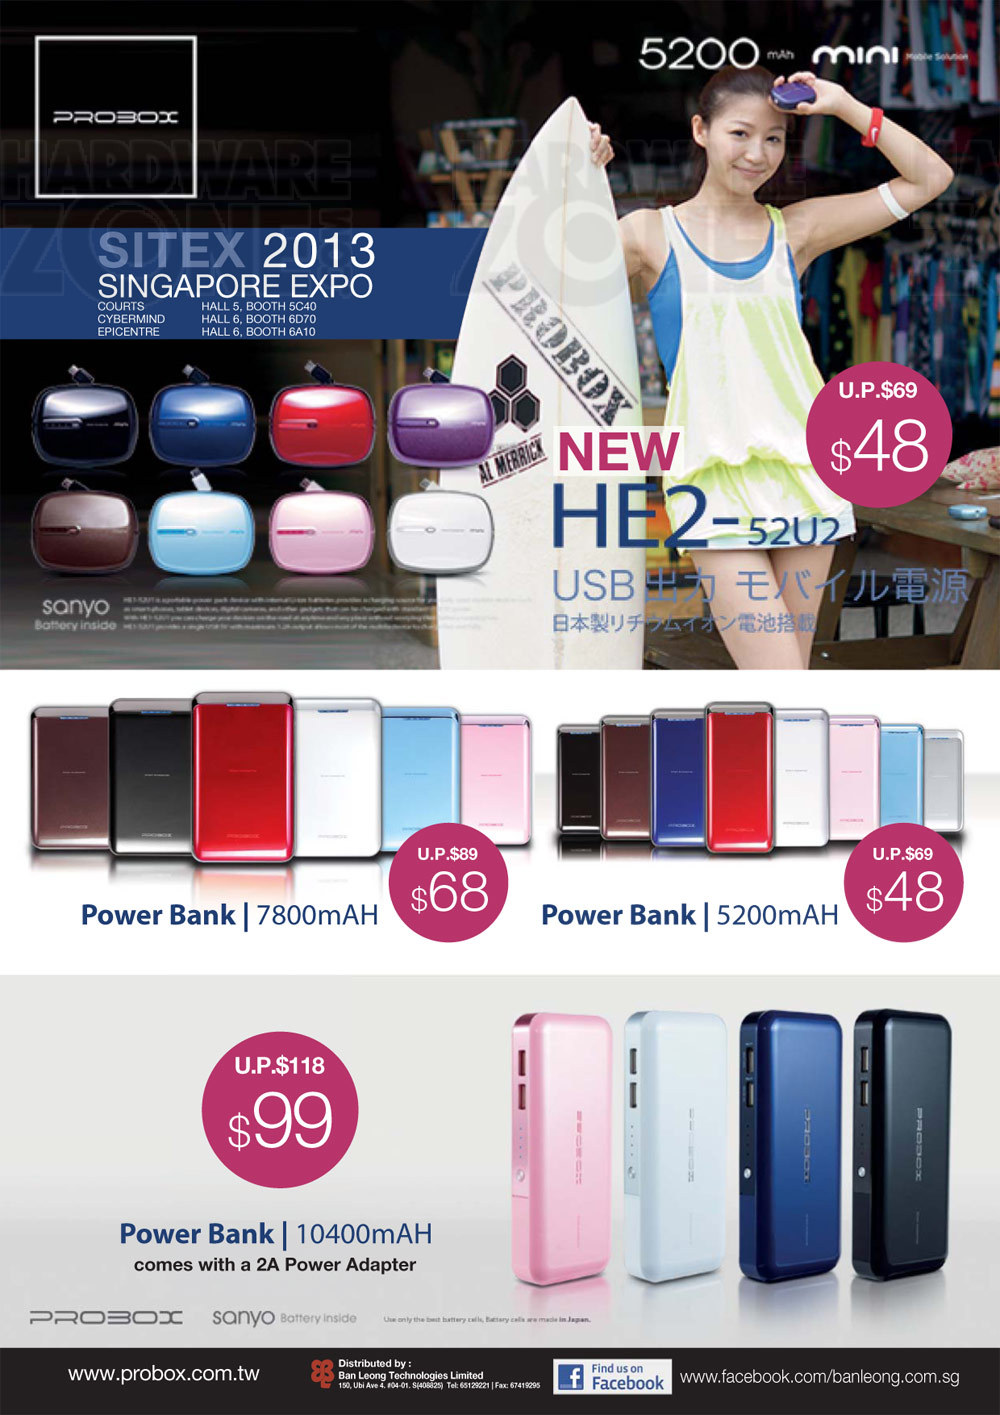 Hotway Probox power banks